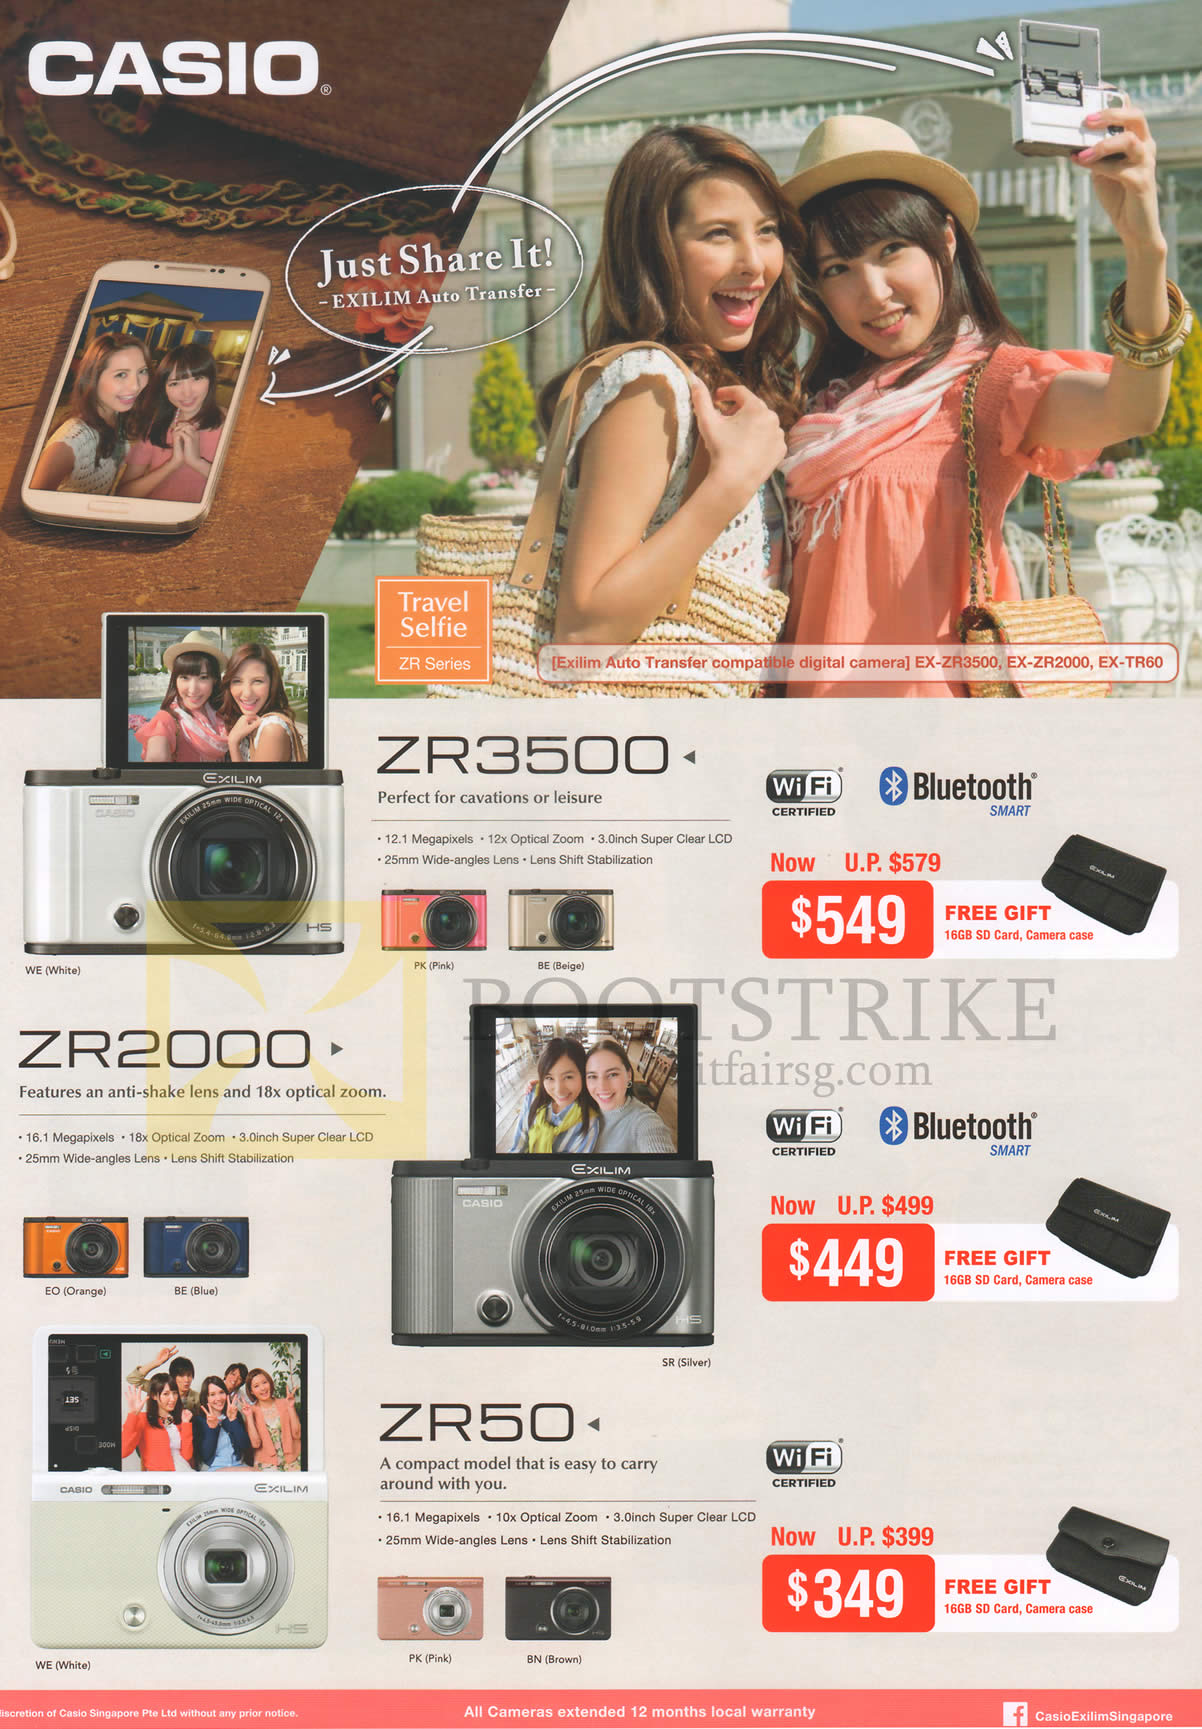 Casio Digital Cameras ZR3500, ZR2000, ZR50